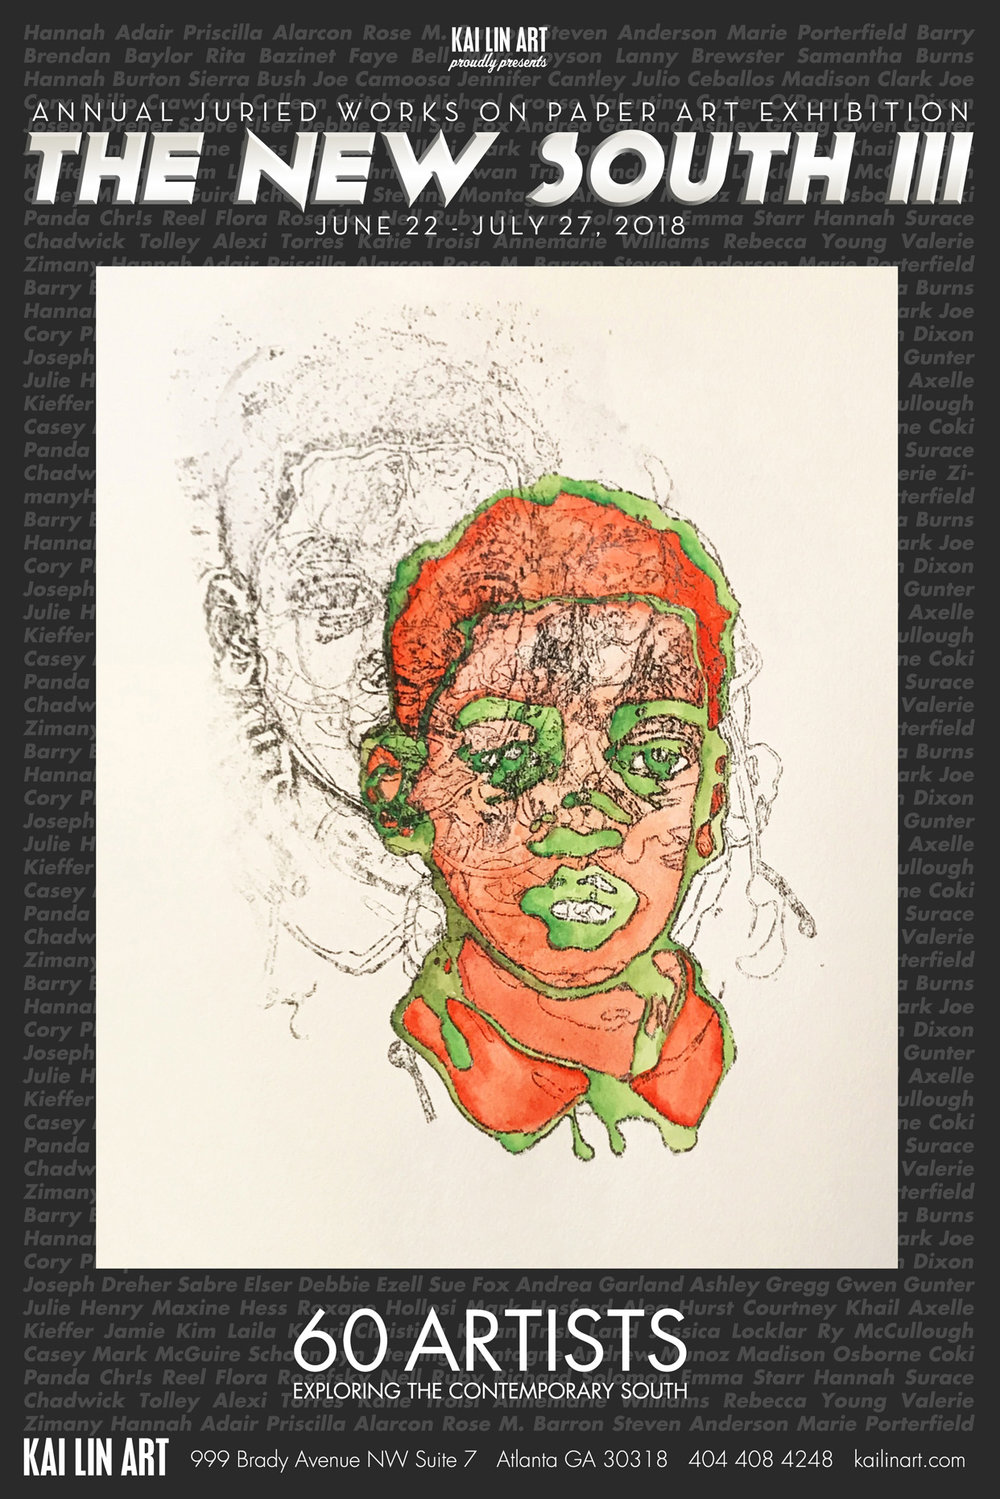 Dreher_Joe_Puer-Rufus-et-Viridis-(The-Boy-Red-and-Green)_Carbon-Transfer-and-Watercolor-on-Paper_11-x-14.jpg